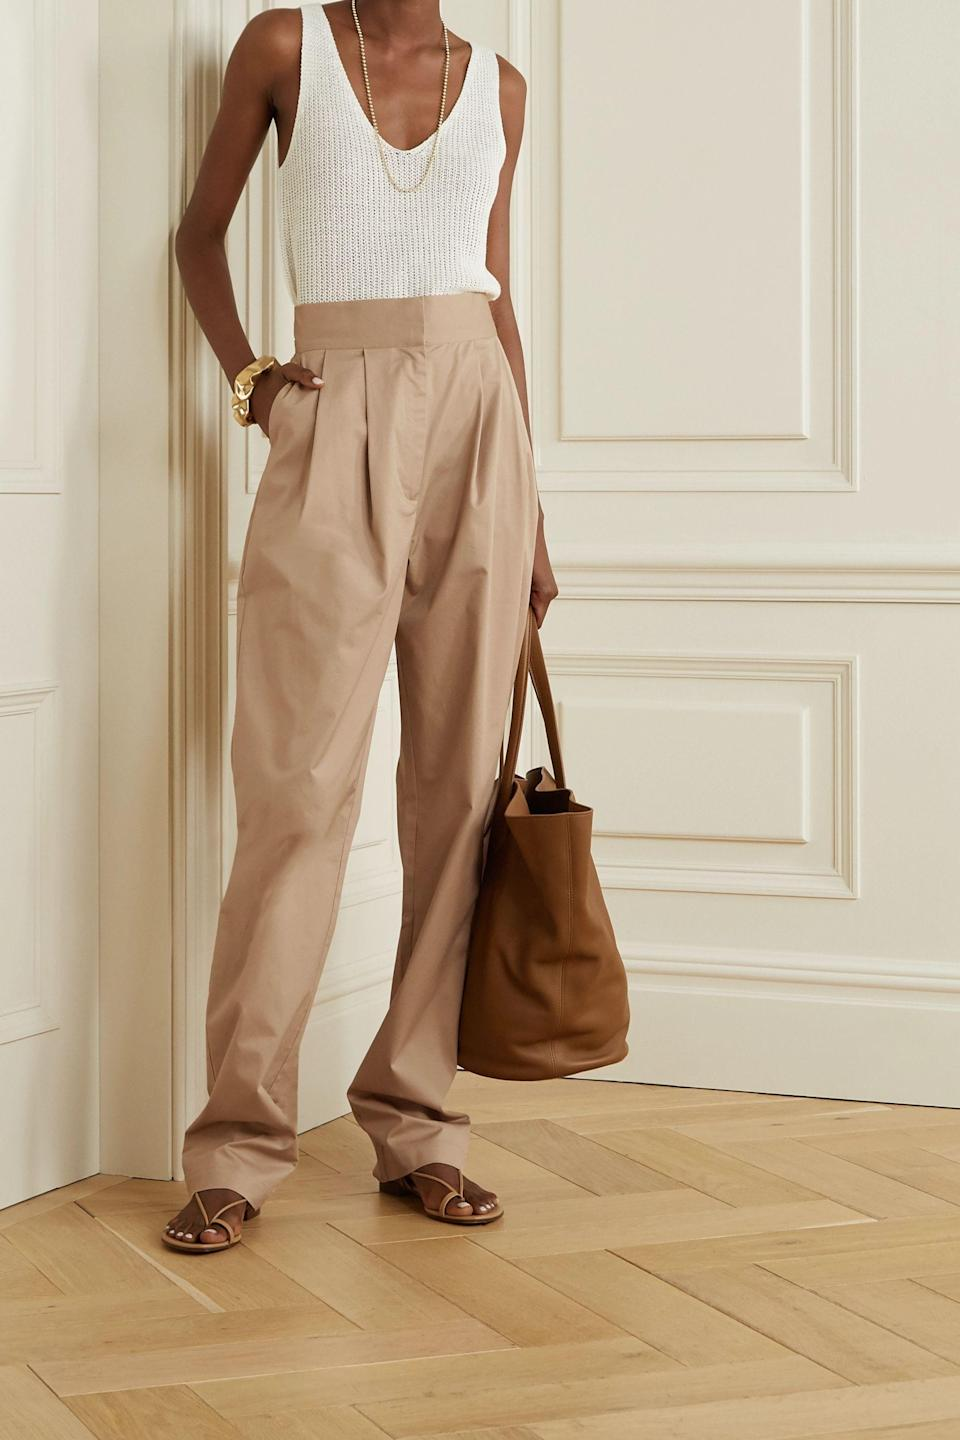 """<p><strong>TOVE</strong></p><p>net-a-porter.com</p><p><strong>$310.00</strong></p><p><a href=""""https://go.redirectingat.com?id=74968X1596630&url=https%3A%2F%2Fwww.net-a-porter.com%2Fen-us%2Fshop%2Fproduct%2Ftove%2Flourdes-stretch-cotton-twill-tapered-pants%2F1233164&sref=https%3A%2F%2Fwww.goodhousekeeping.com%2Fholidays%2Fthanksgiving-ideas%2Fg22728910%2Fthanksgiving-outfits%2F"""" rel=""""nofollow noopener"""" target=""""_blank"""" data-ylk=""""slk:Shop Now"""" class=""""link rapid-noclick-resp"""">Shop Now</a></p>"""